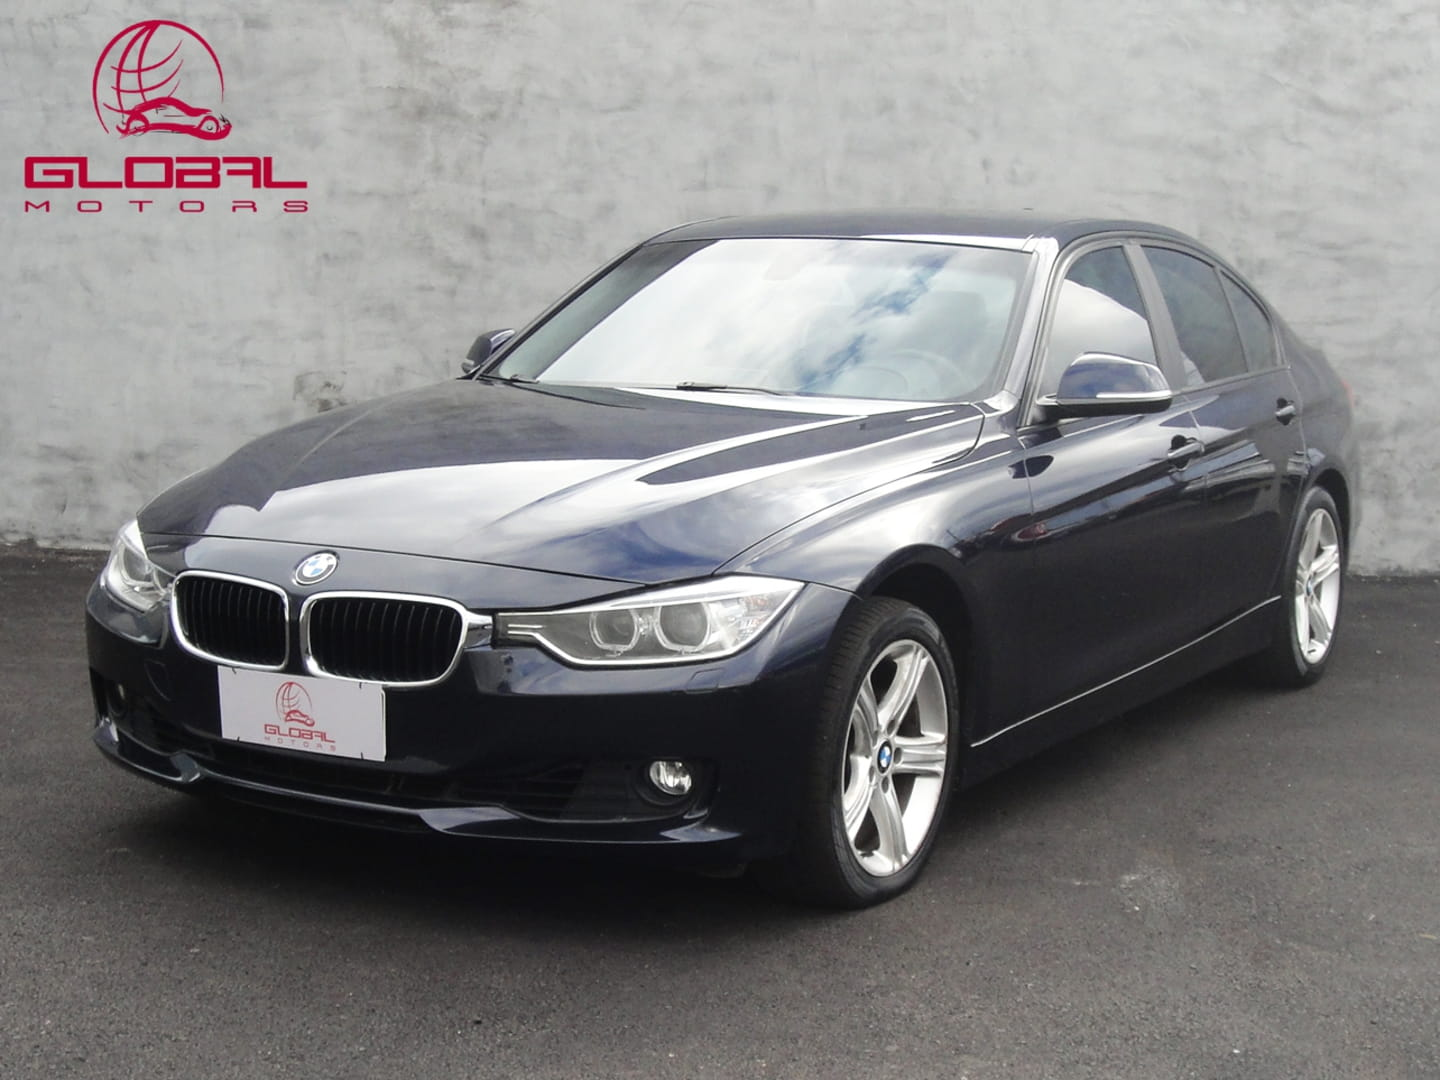 BMW 320I 2.0 16V TURBO GASOLINA 4P AUT